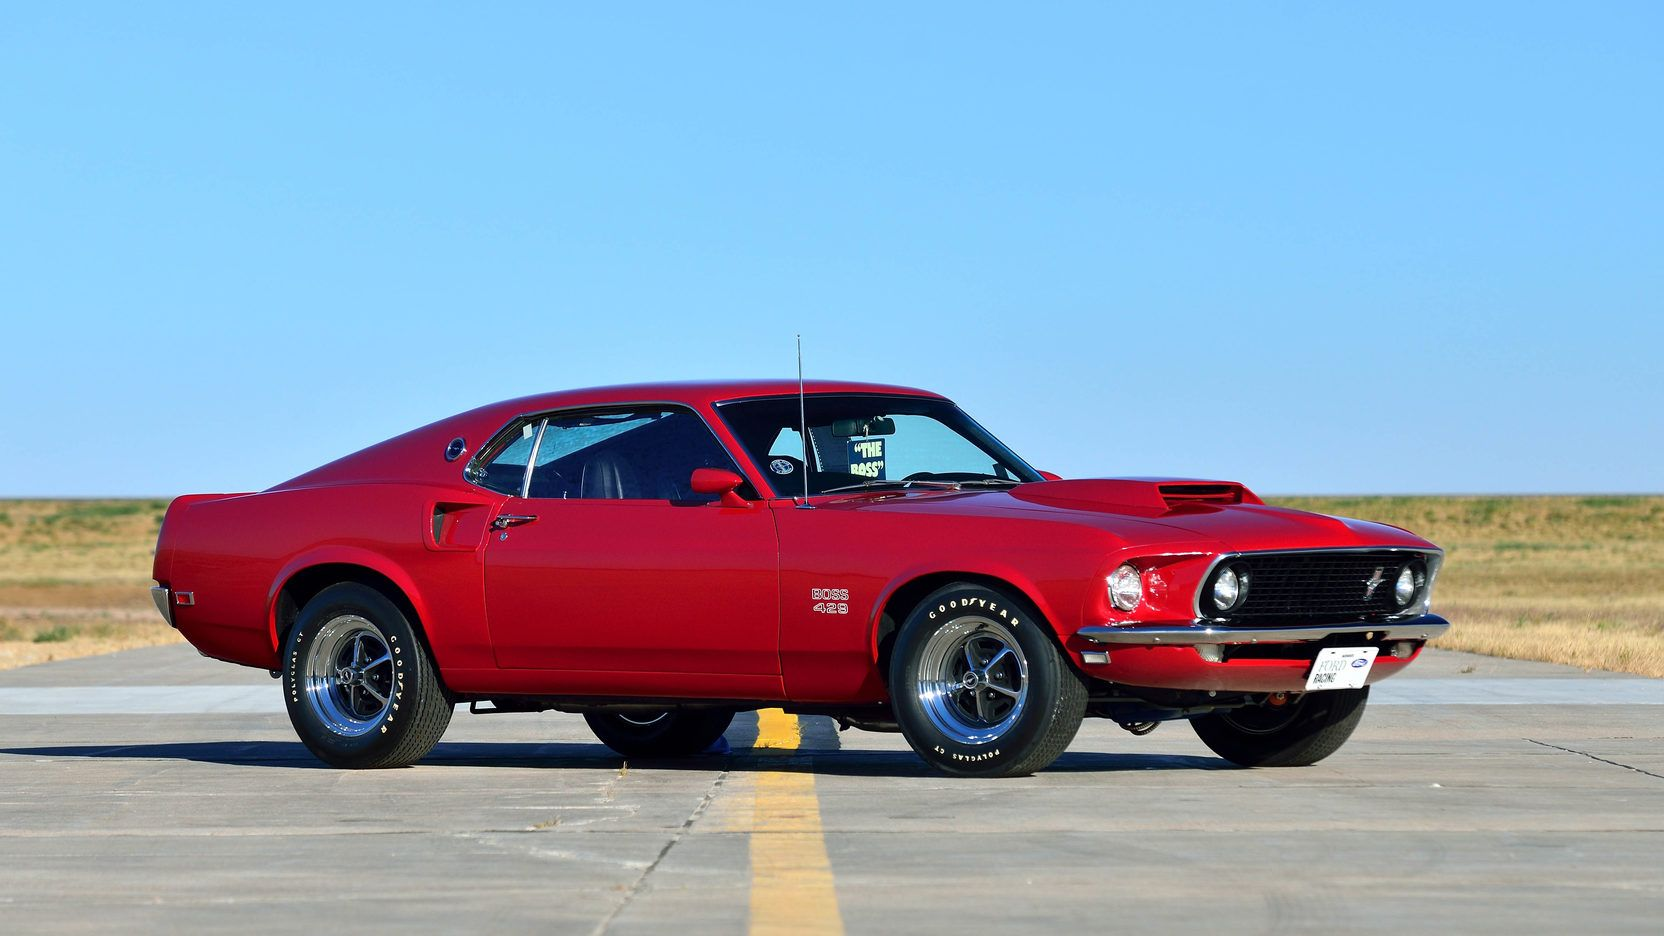 1969 Ford Mustang Boss 429 In Candy Apple Red Kk 1663 Ford Mustang Boss Ford Mustang Mustang Boss